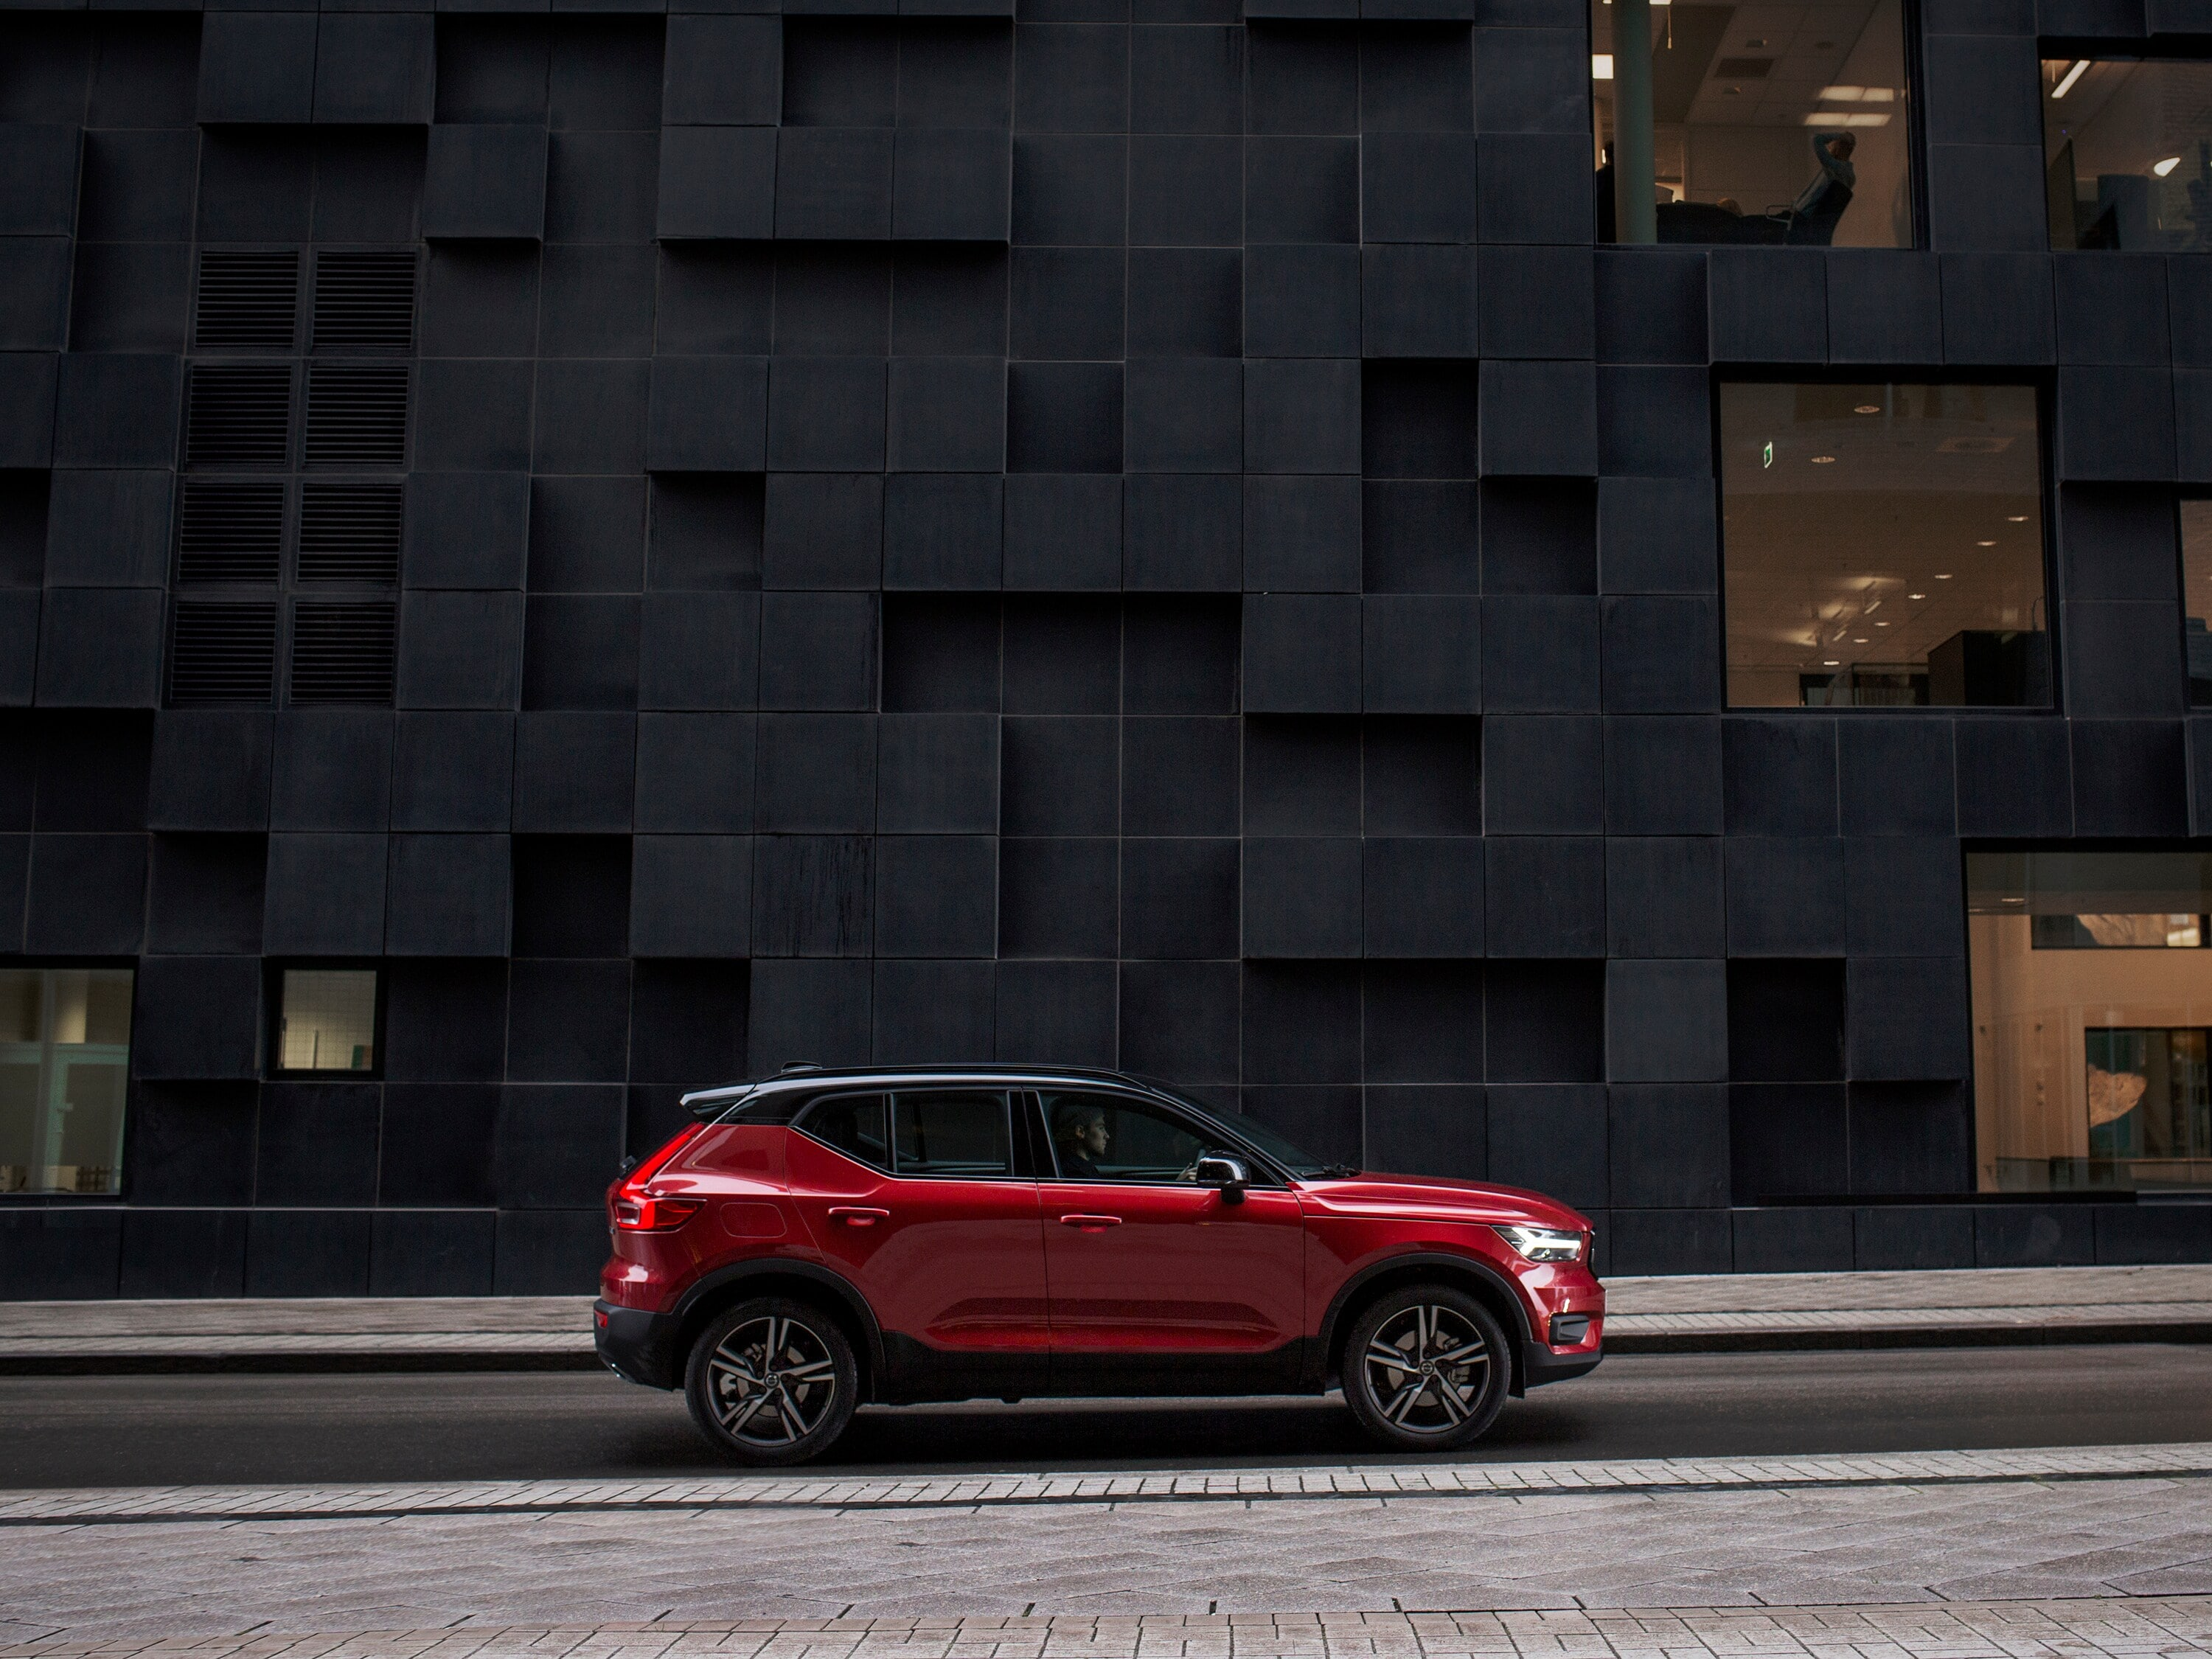 A Volvo XC40 drives down a street in front of a square-blocked building in Oslo